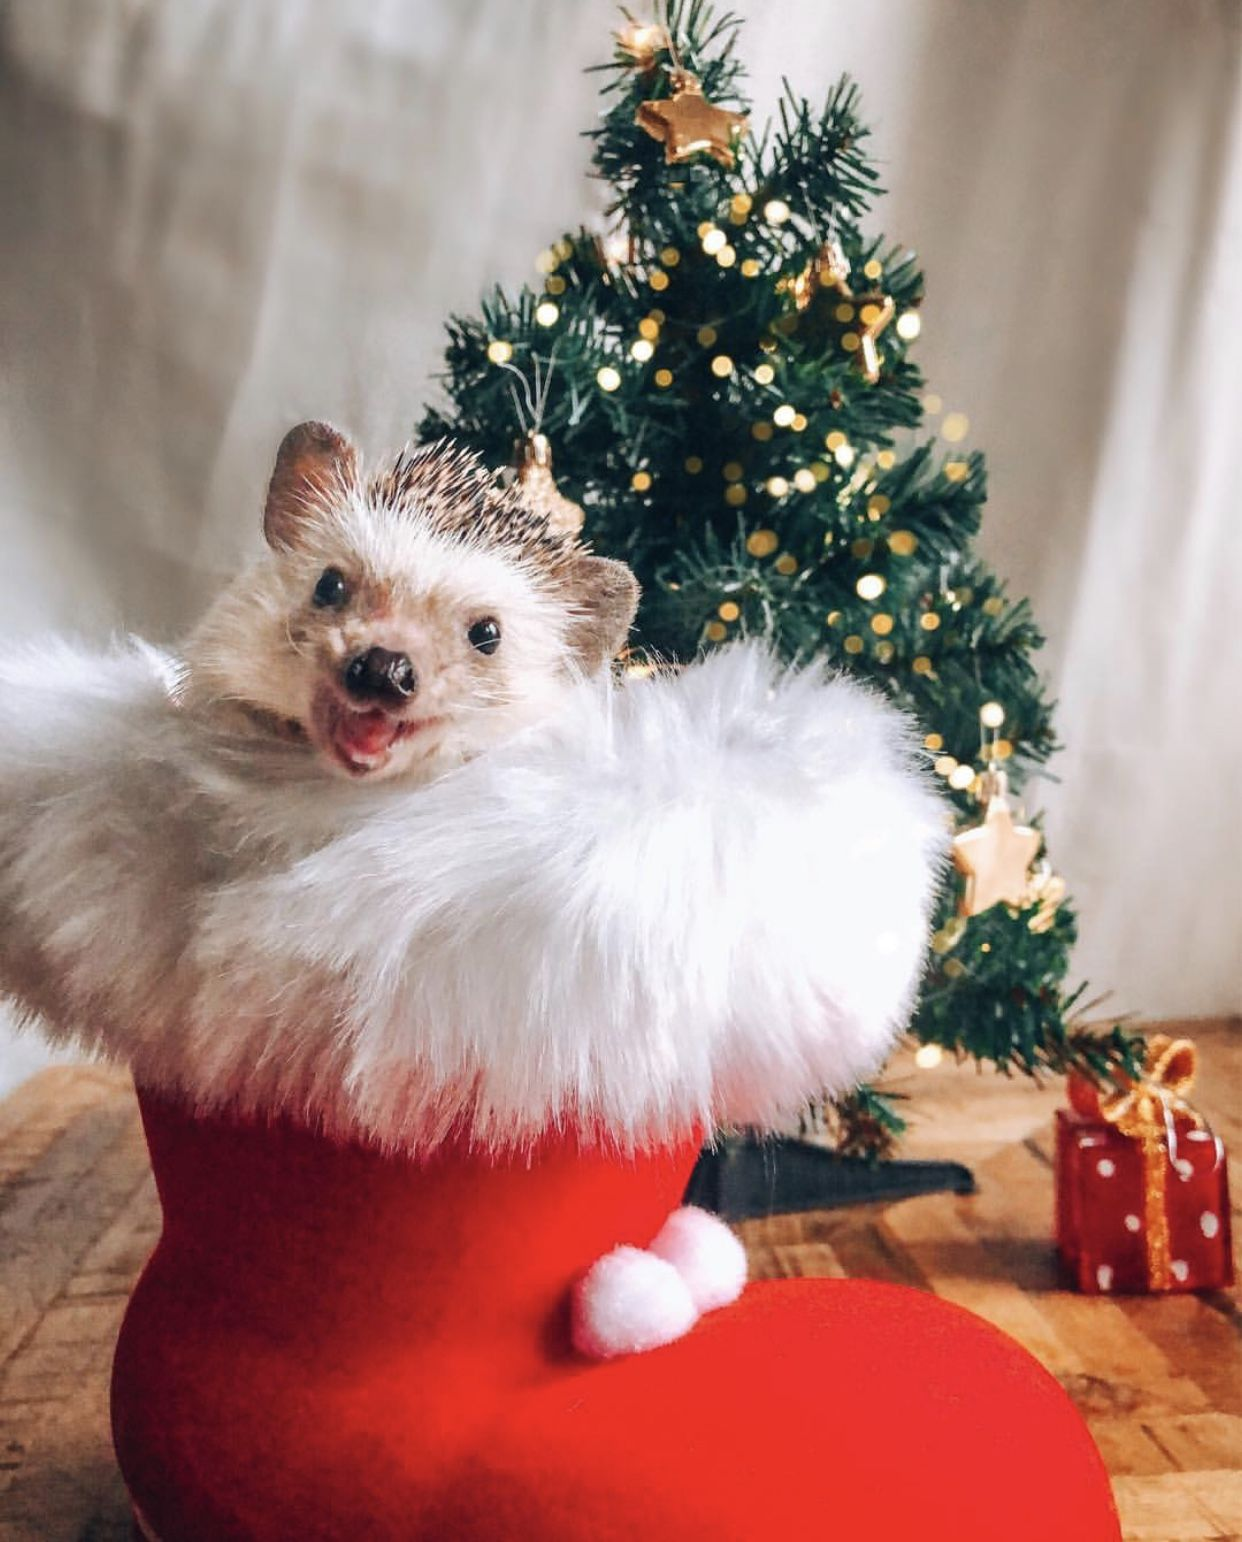 Pin By Ella Lewis On Animals Funny Hedgehog Pet Holiday Cute Baby Animals